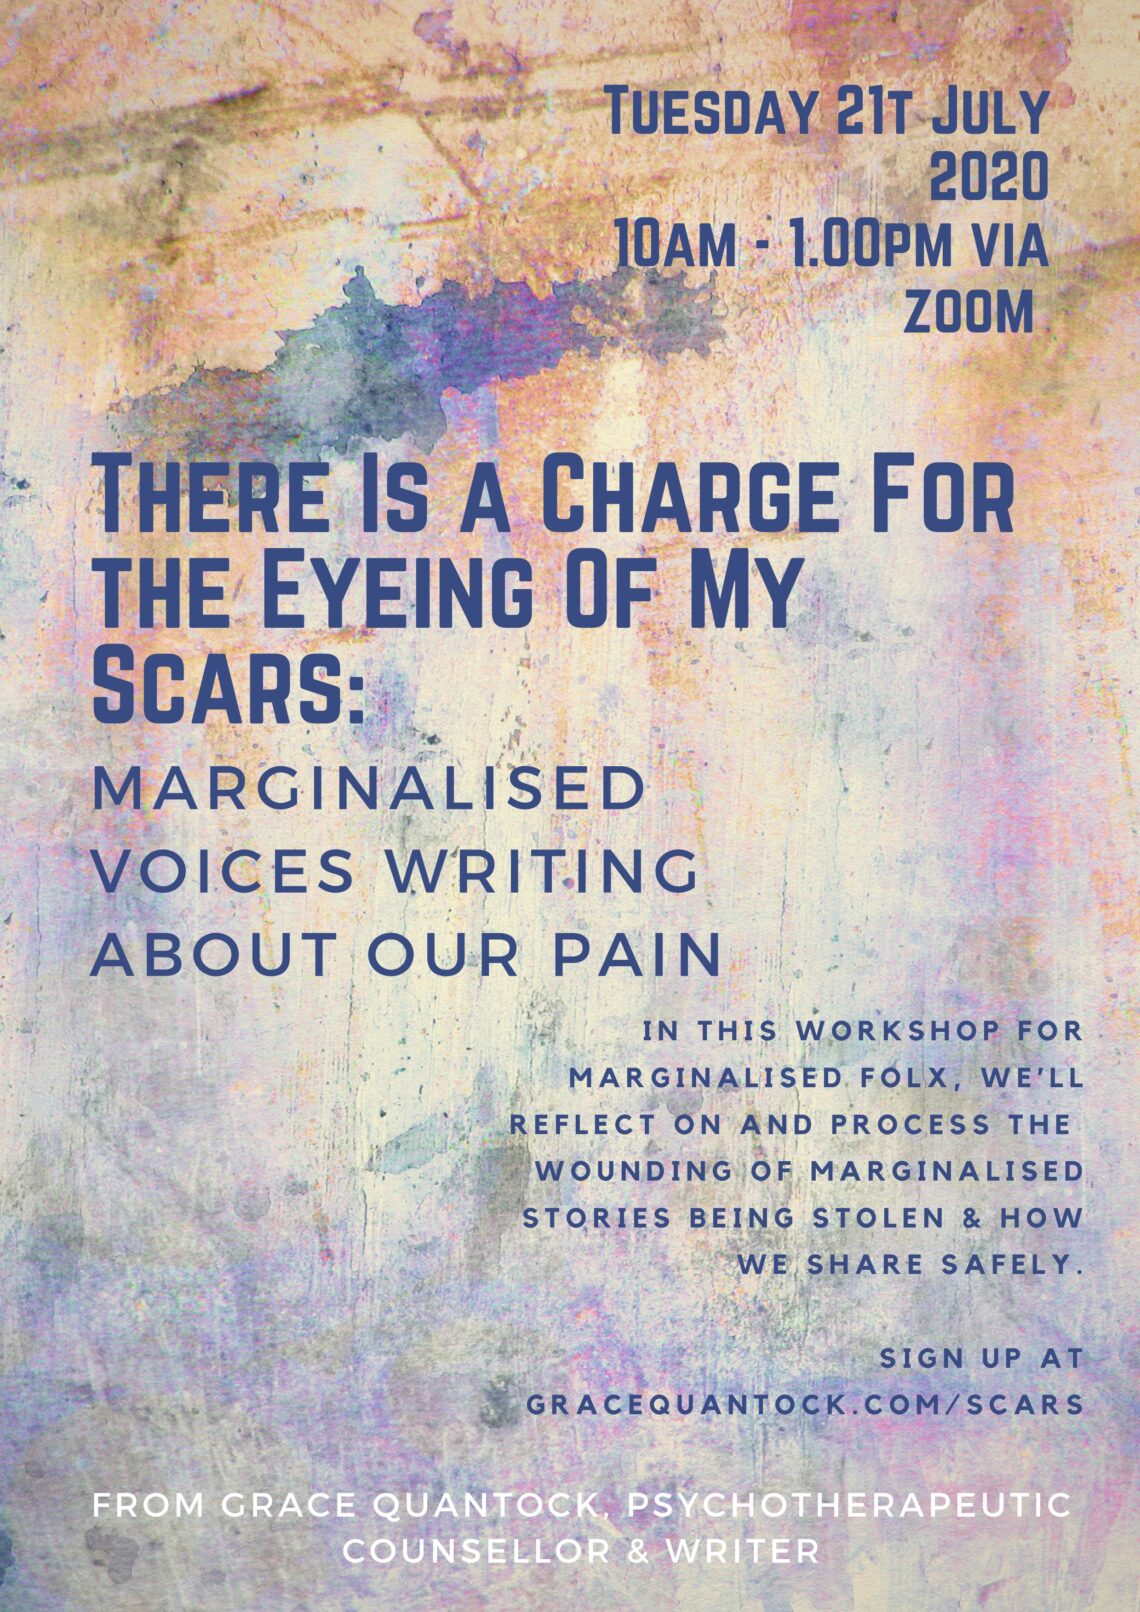 There is a charge for the eyeing of my scars workshop marginalised voices writing about pain